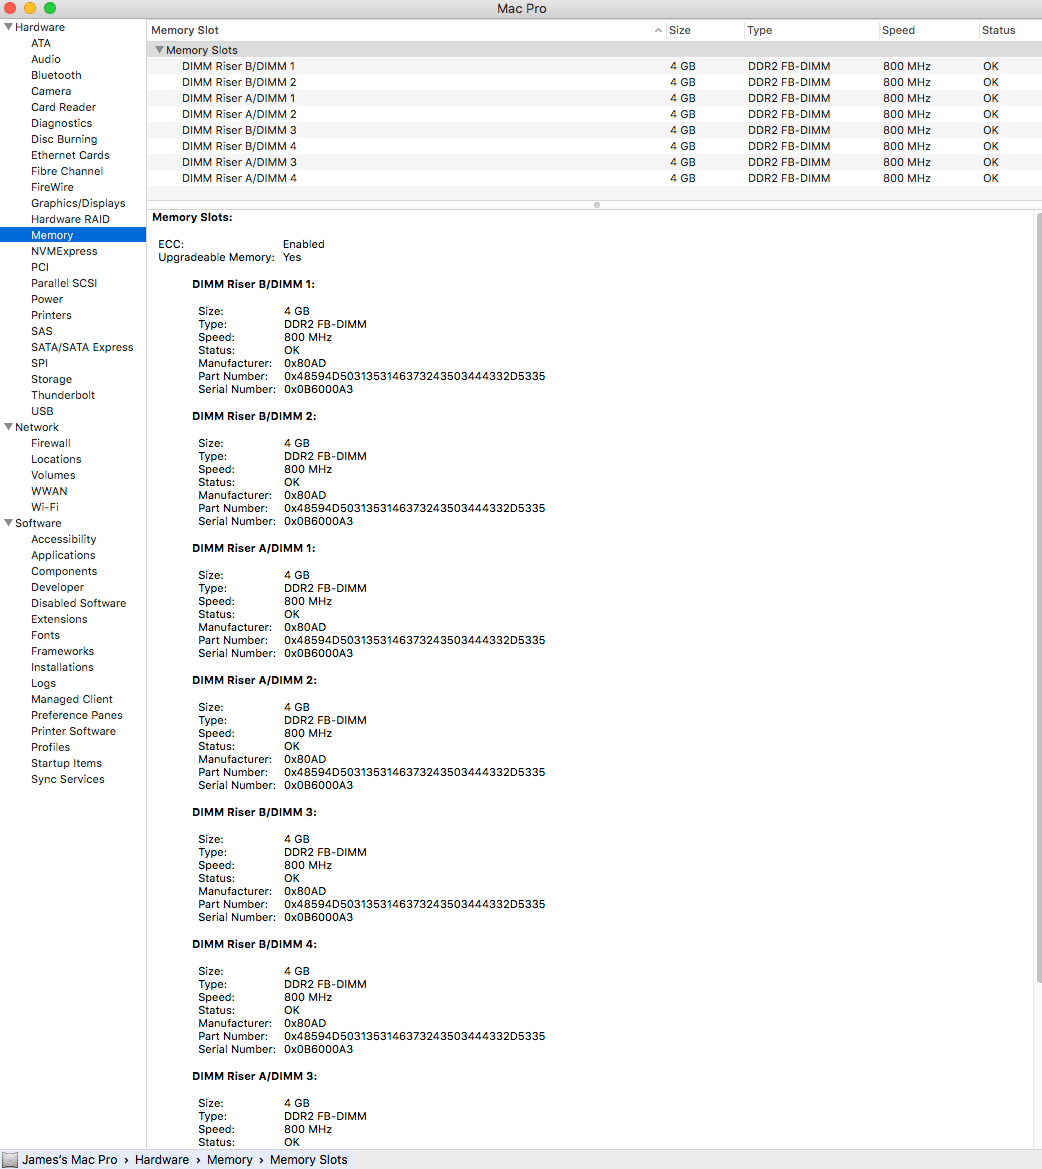 I have a Mac Pro 3,1 from 2008 w/ 2x2.8 GHz Quad Core